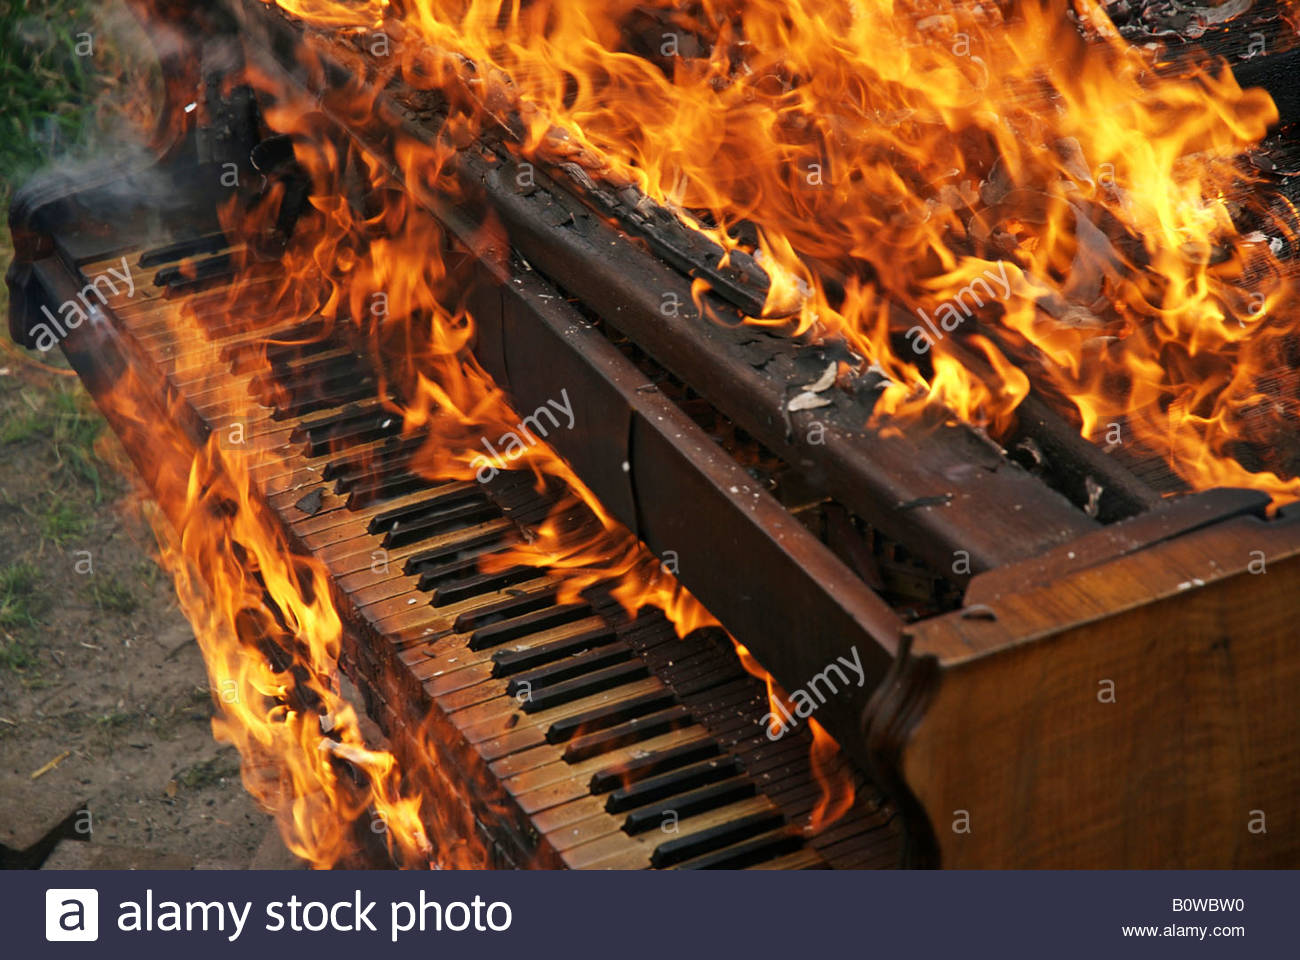 Burning piano, piano en feu Photo Stock